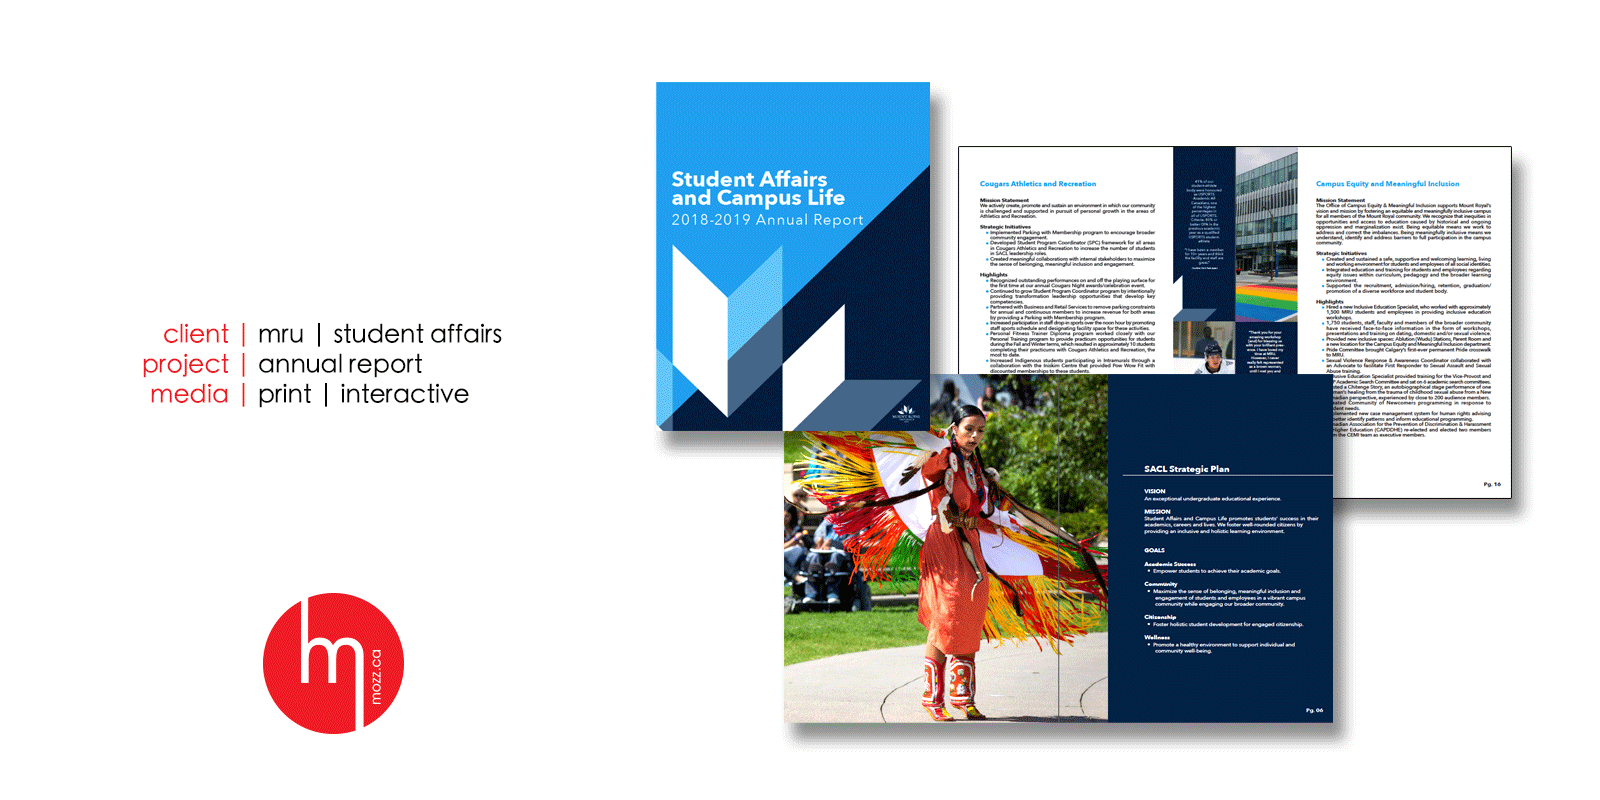 mozz design of the 2018-2019 student affairs and campus life divisional annual report for mount royal university